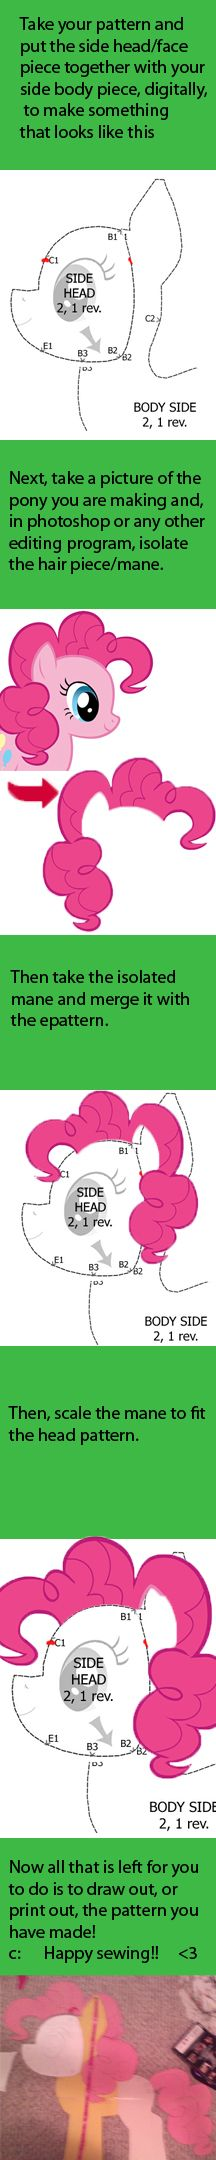 Mane tutorial for My Little Pony Plushies by Meowplease on deviantART